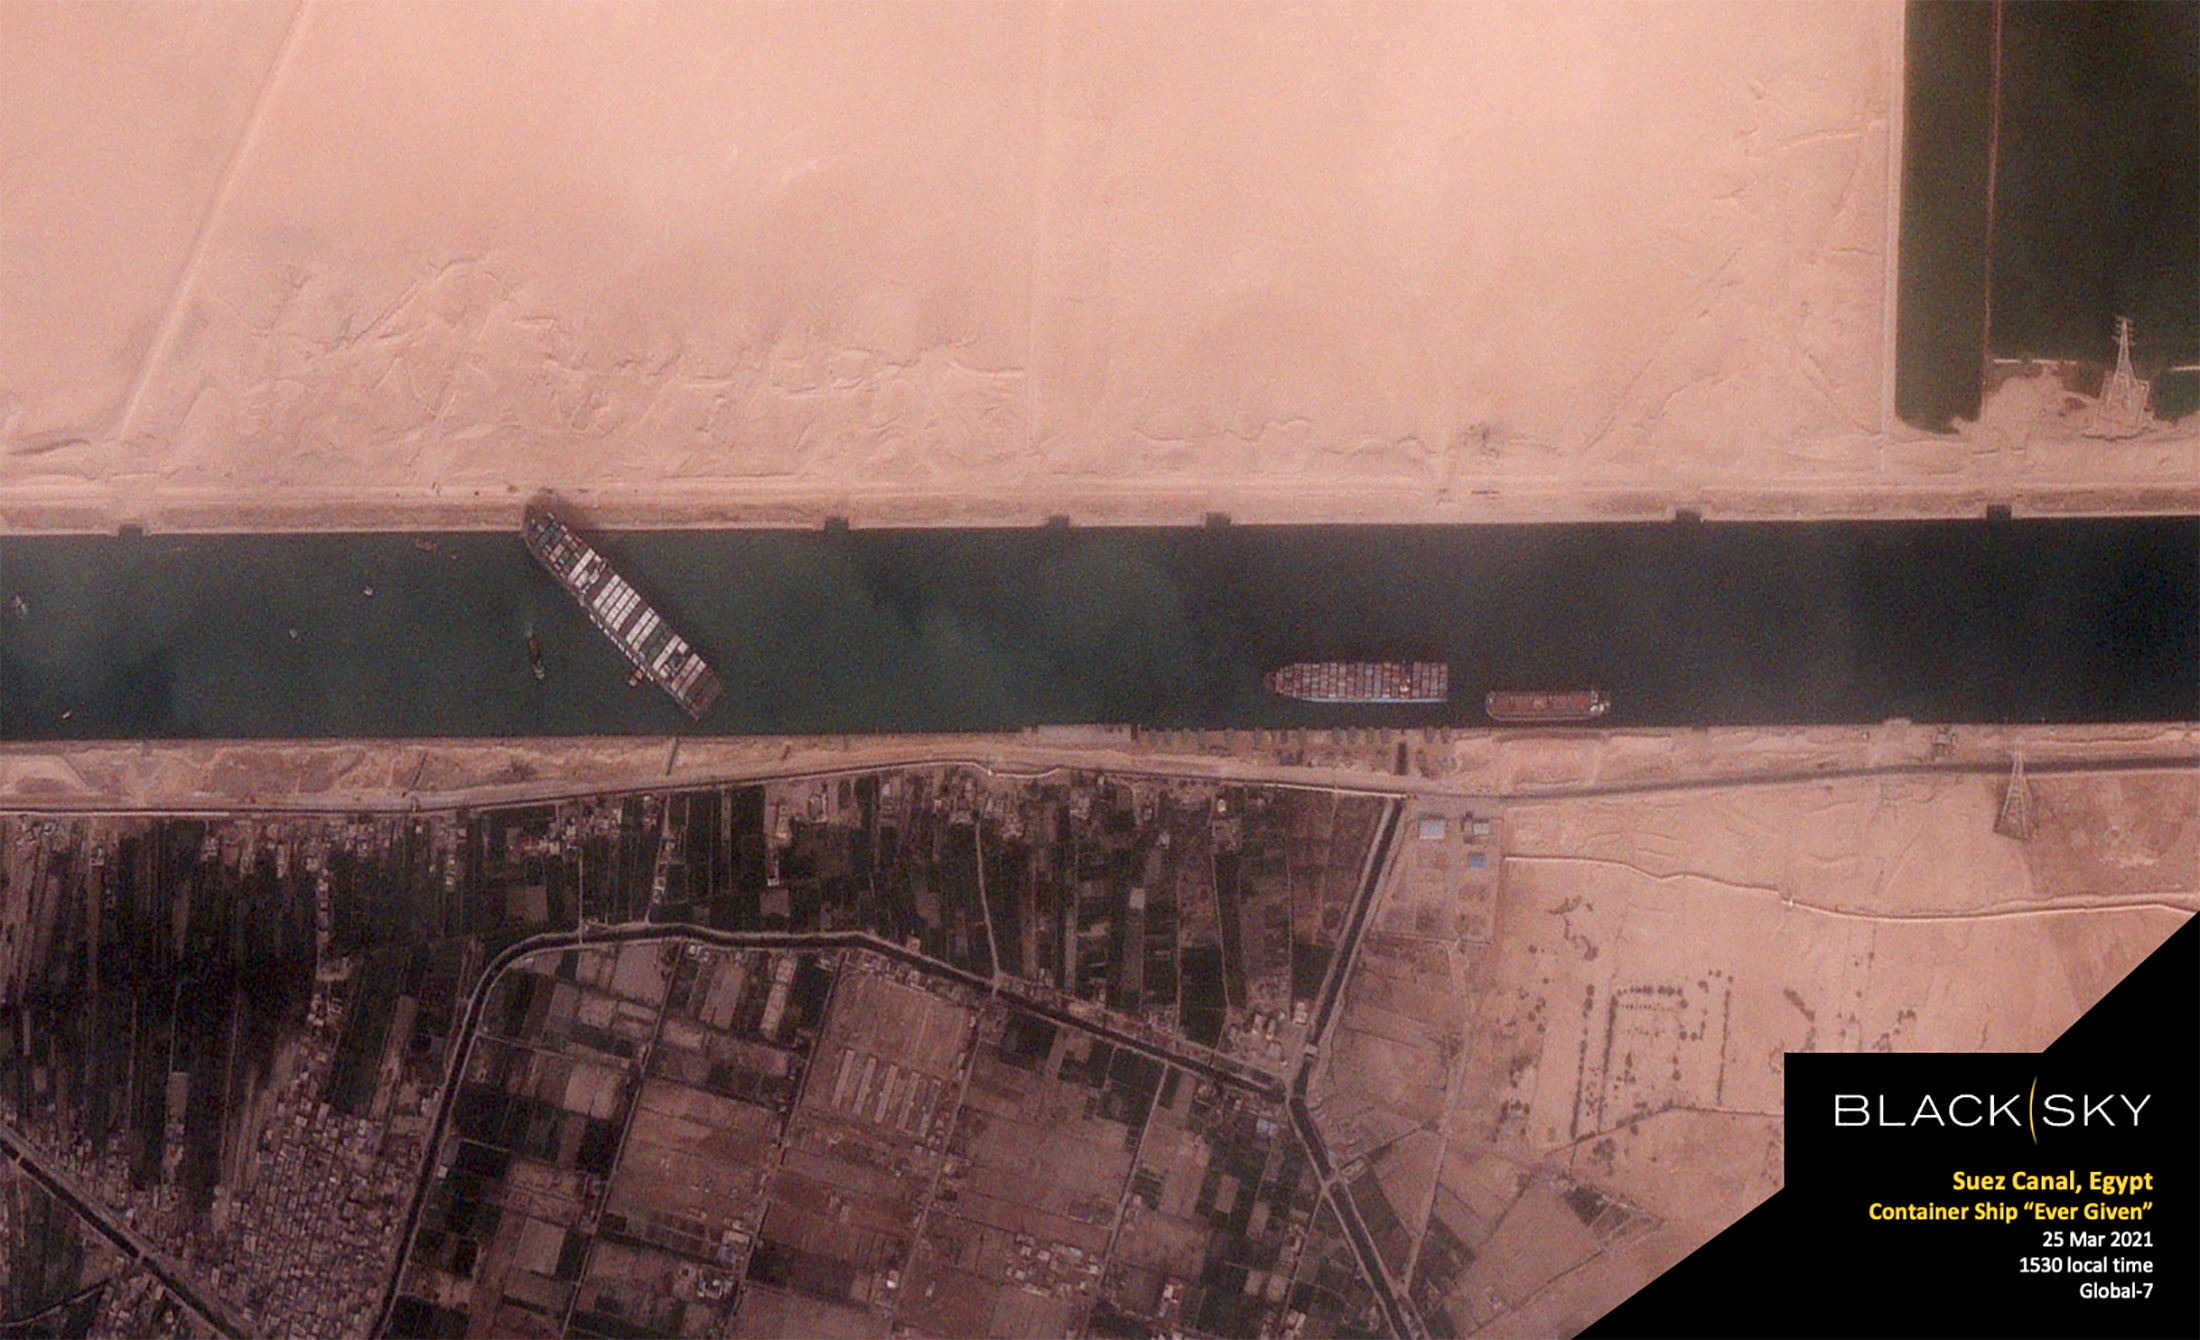 The 400-meter, 224,000-tonne Ever Given container ship, leased by Taiwan's Evergreen Marine Corp, blocks Egypt's Suez Canal in a BlackSky satellite image taken at 15:30 local time March 25, 2021. BlackSky/Handout via REUTERS